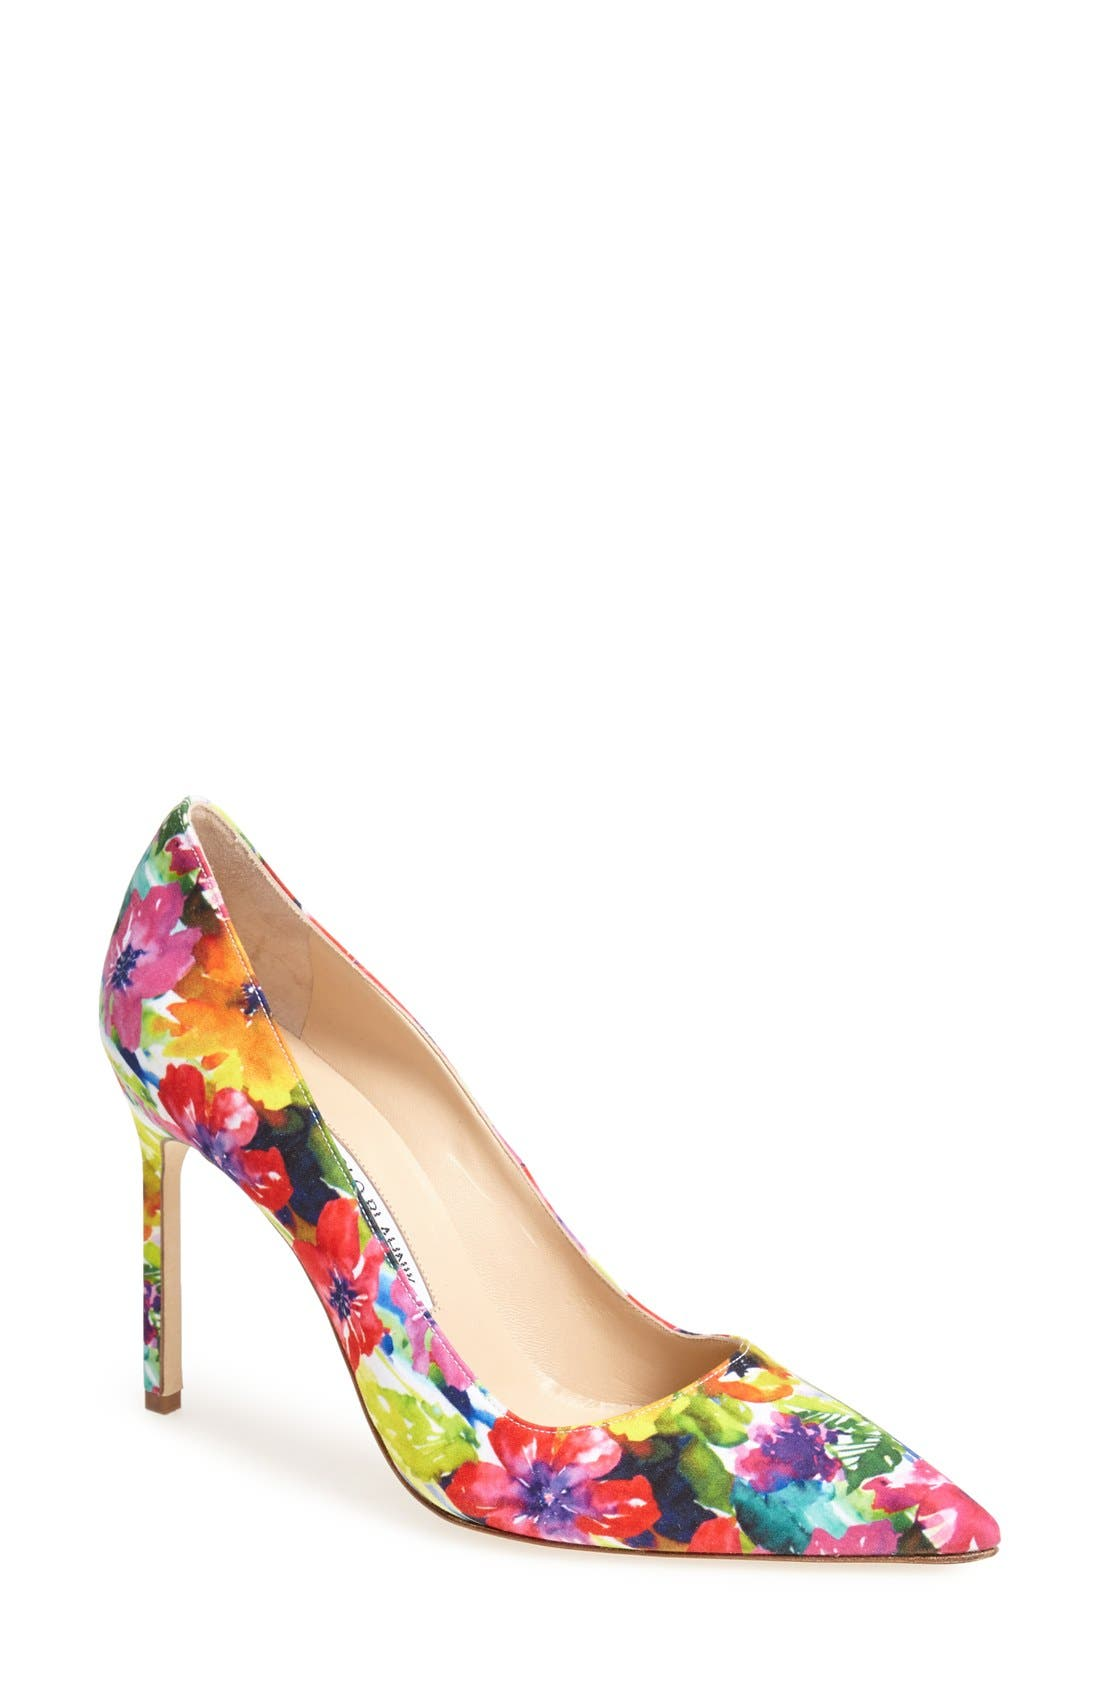 MANOLO BLAHNIK, 'BB' Pump, Main thumbnail 1, color, 650